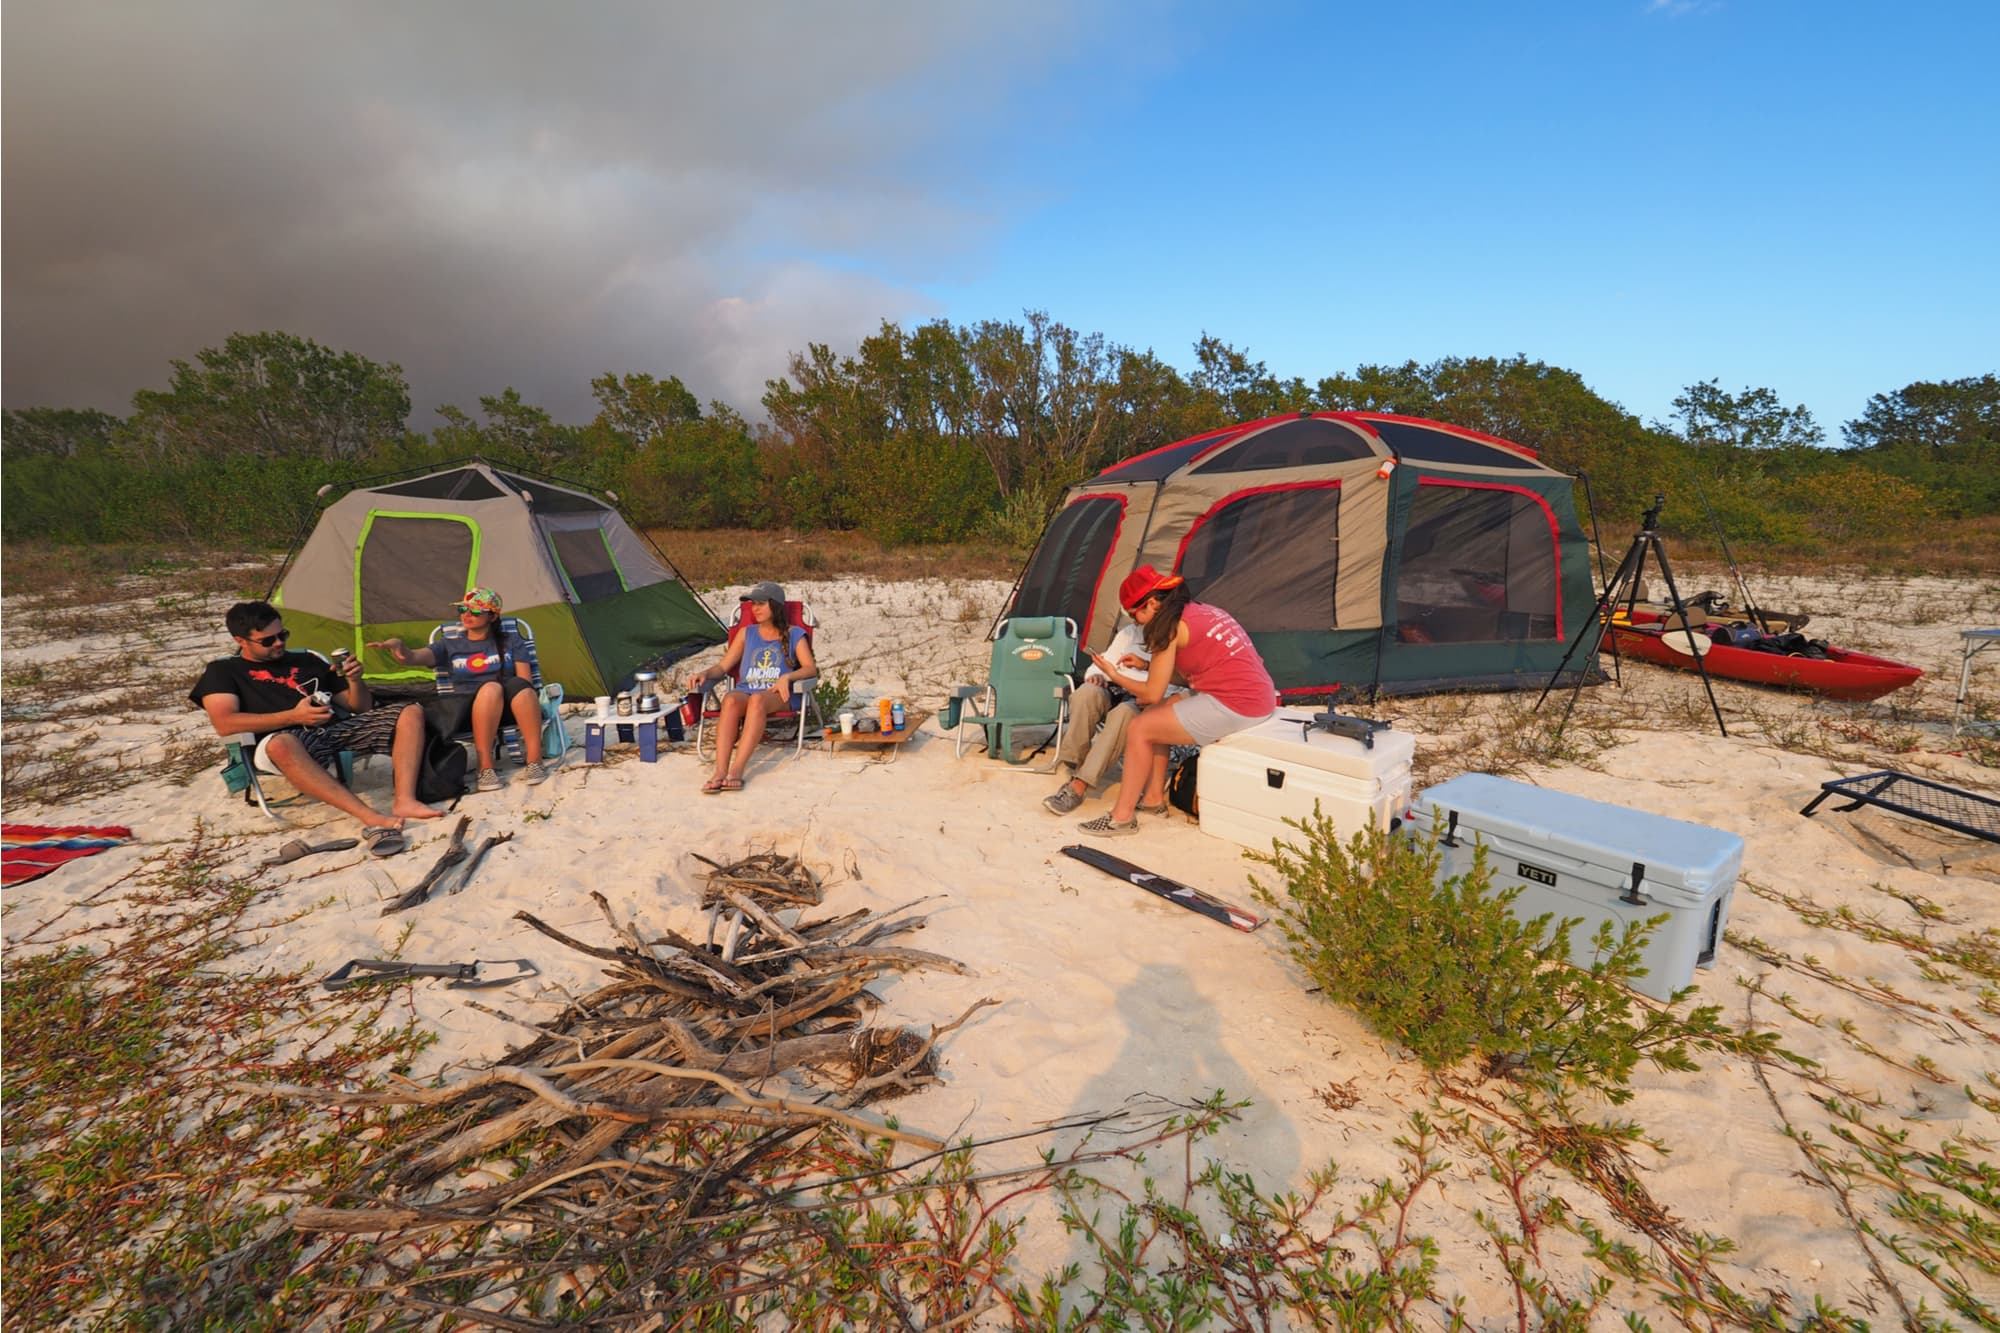 campers hanging out on the beach